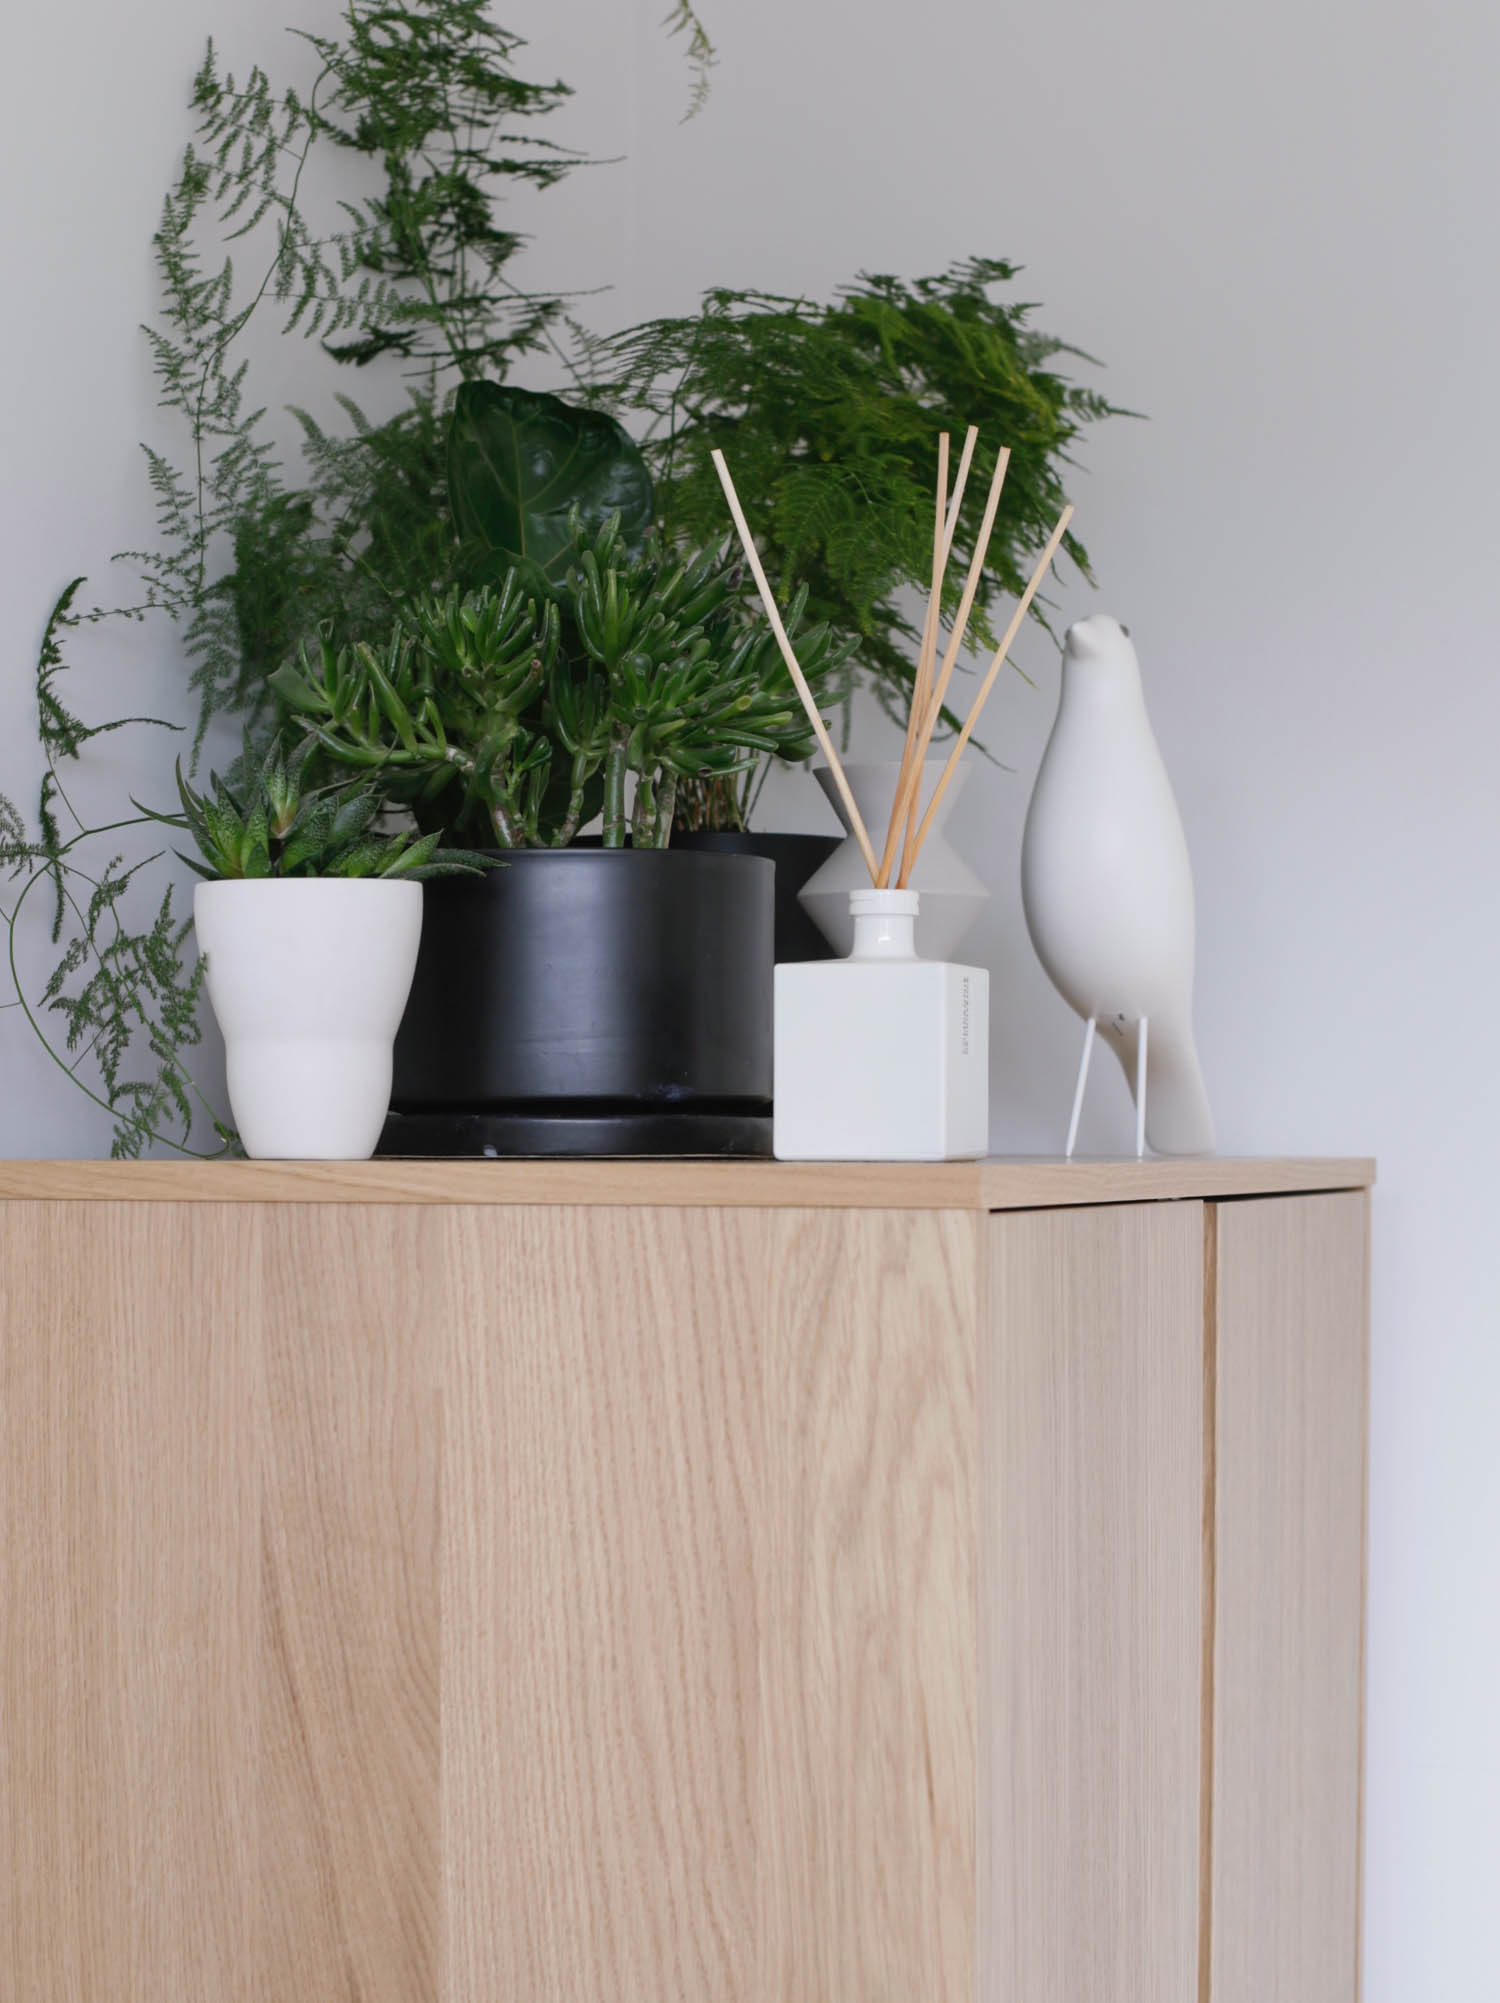 Houseplants and white Vitra house bird